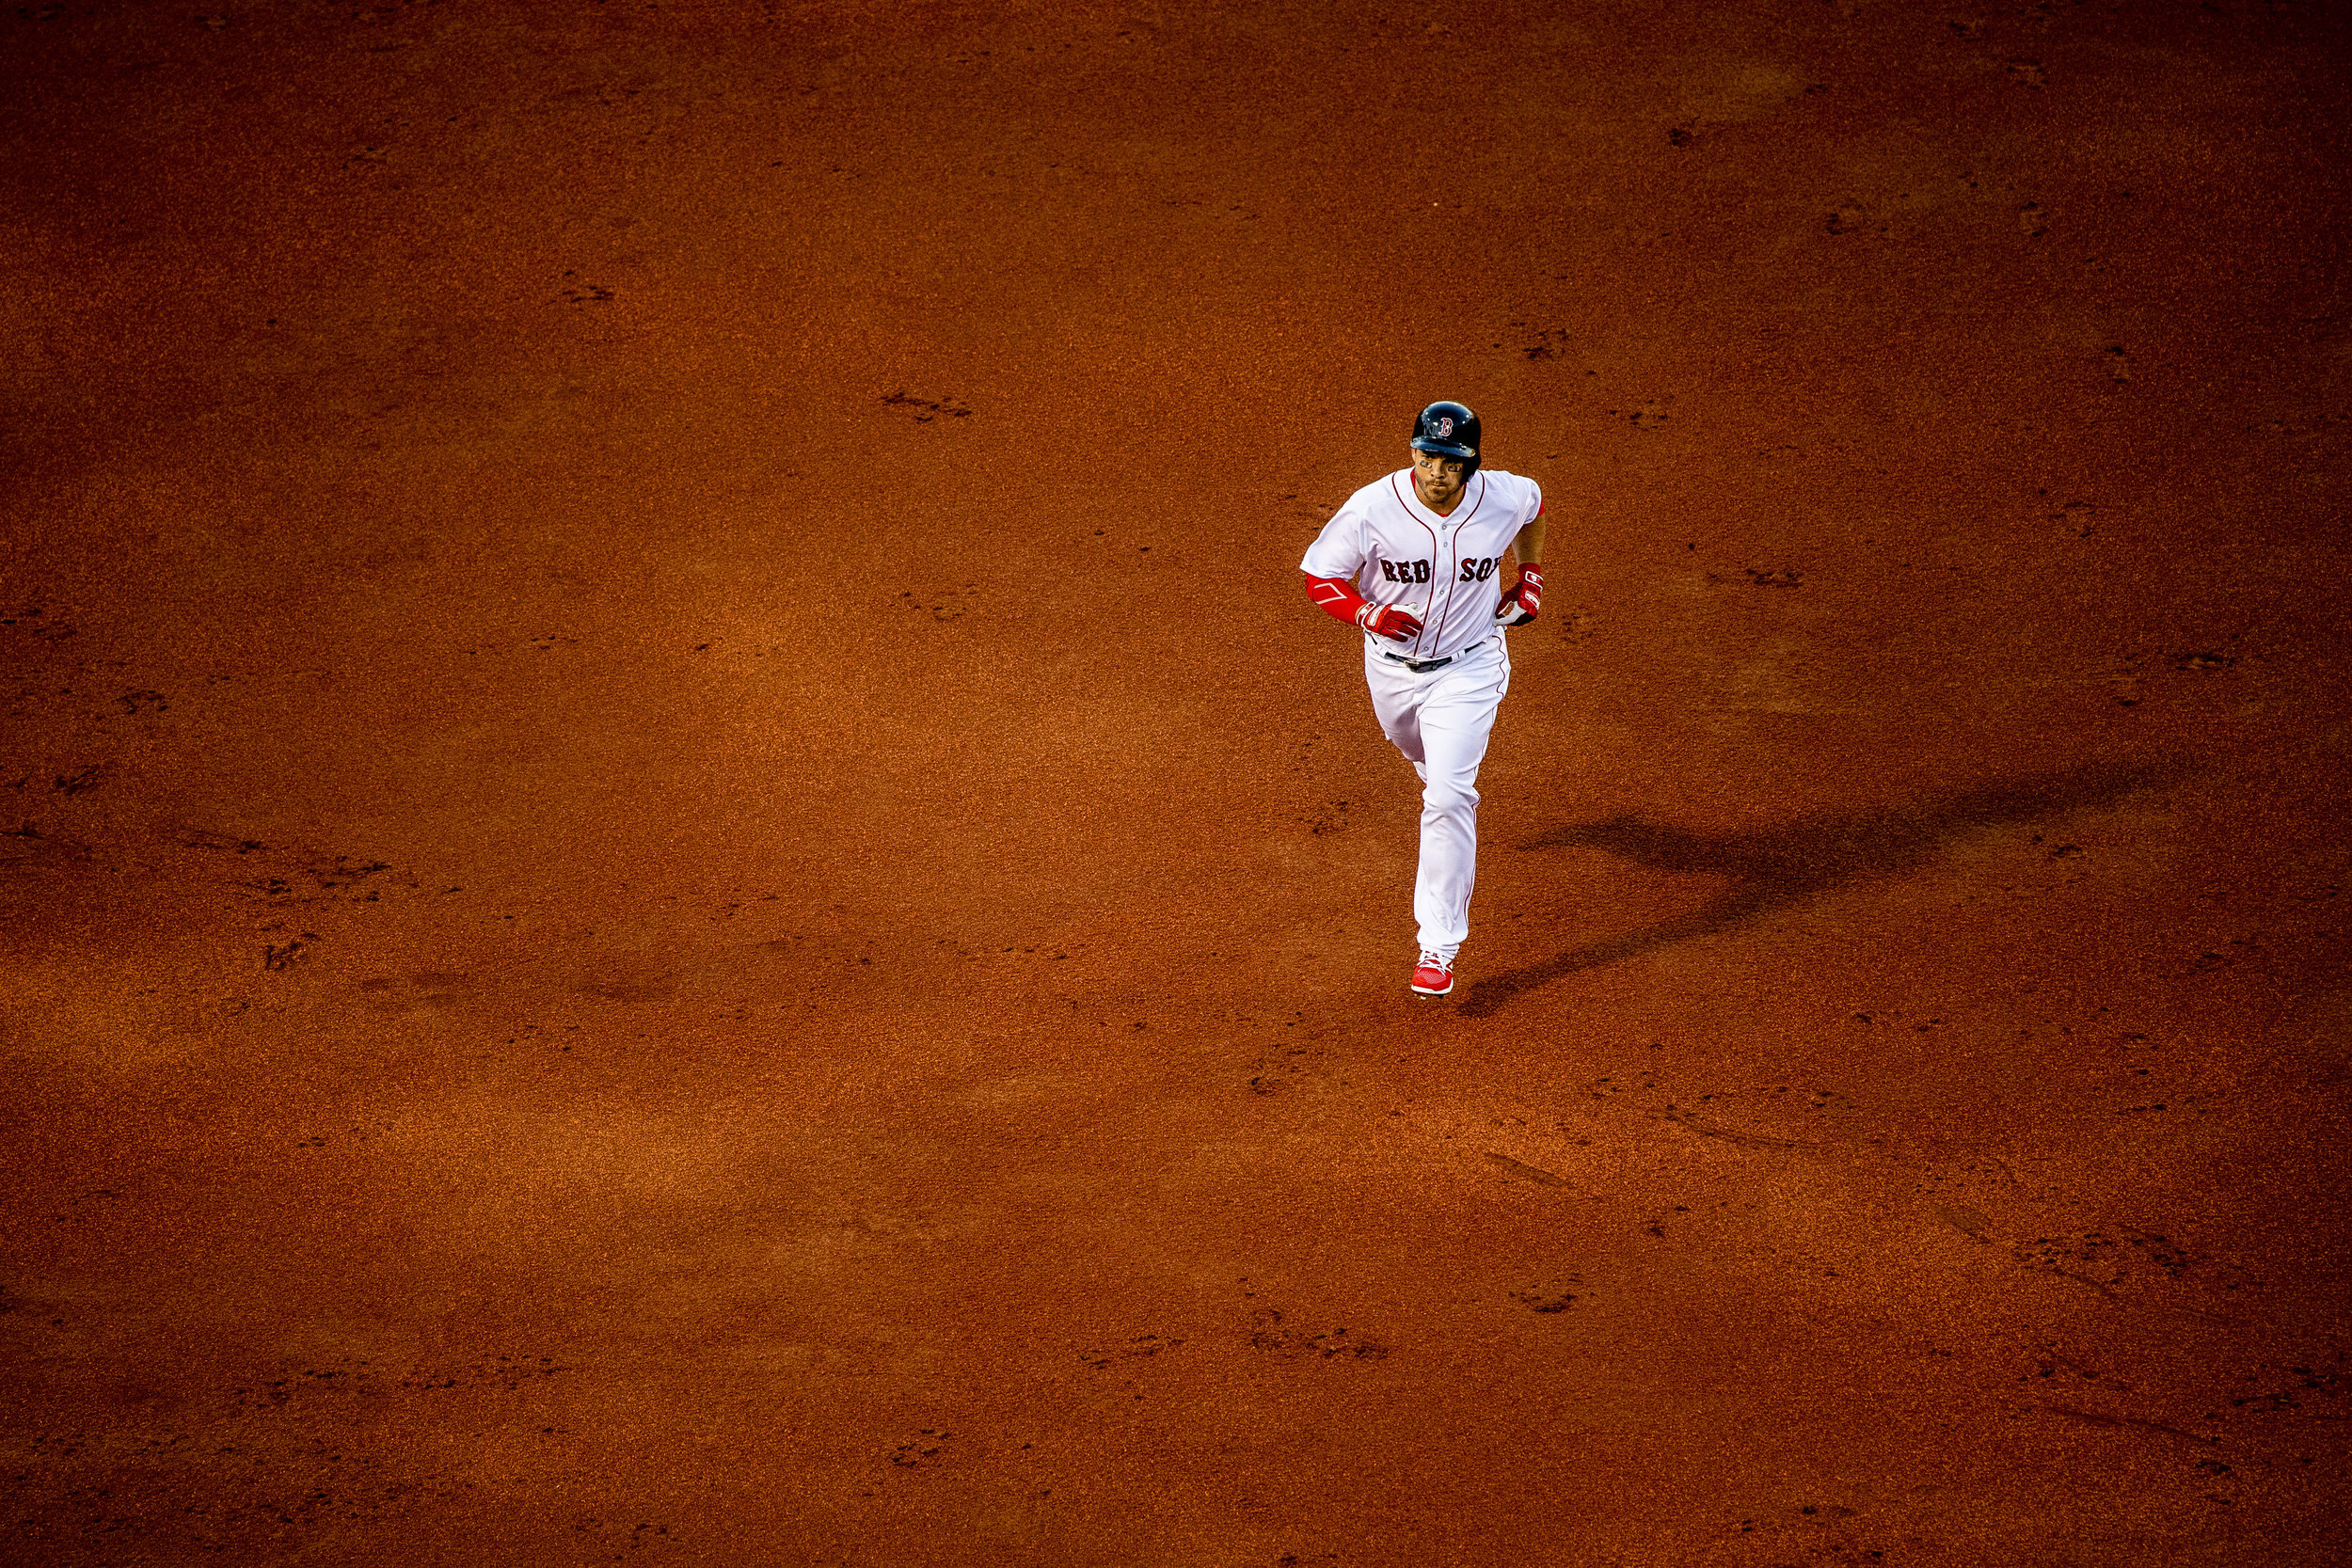 July 8, 2018, Boston, MA: Boston Red Sox infielder Steve Pearce jogs around the bases after hitting a home run as the Boston Red Sox face the Texas Rangers Fenway Park in Boston, Massachusetts on Monday, July 9, 2018. (Photo by Matthew Thomas/Boston Red Sox)